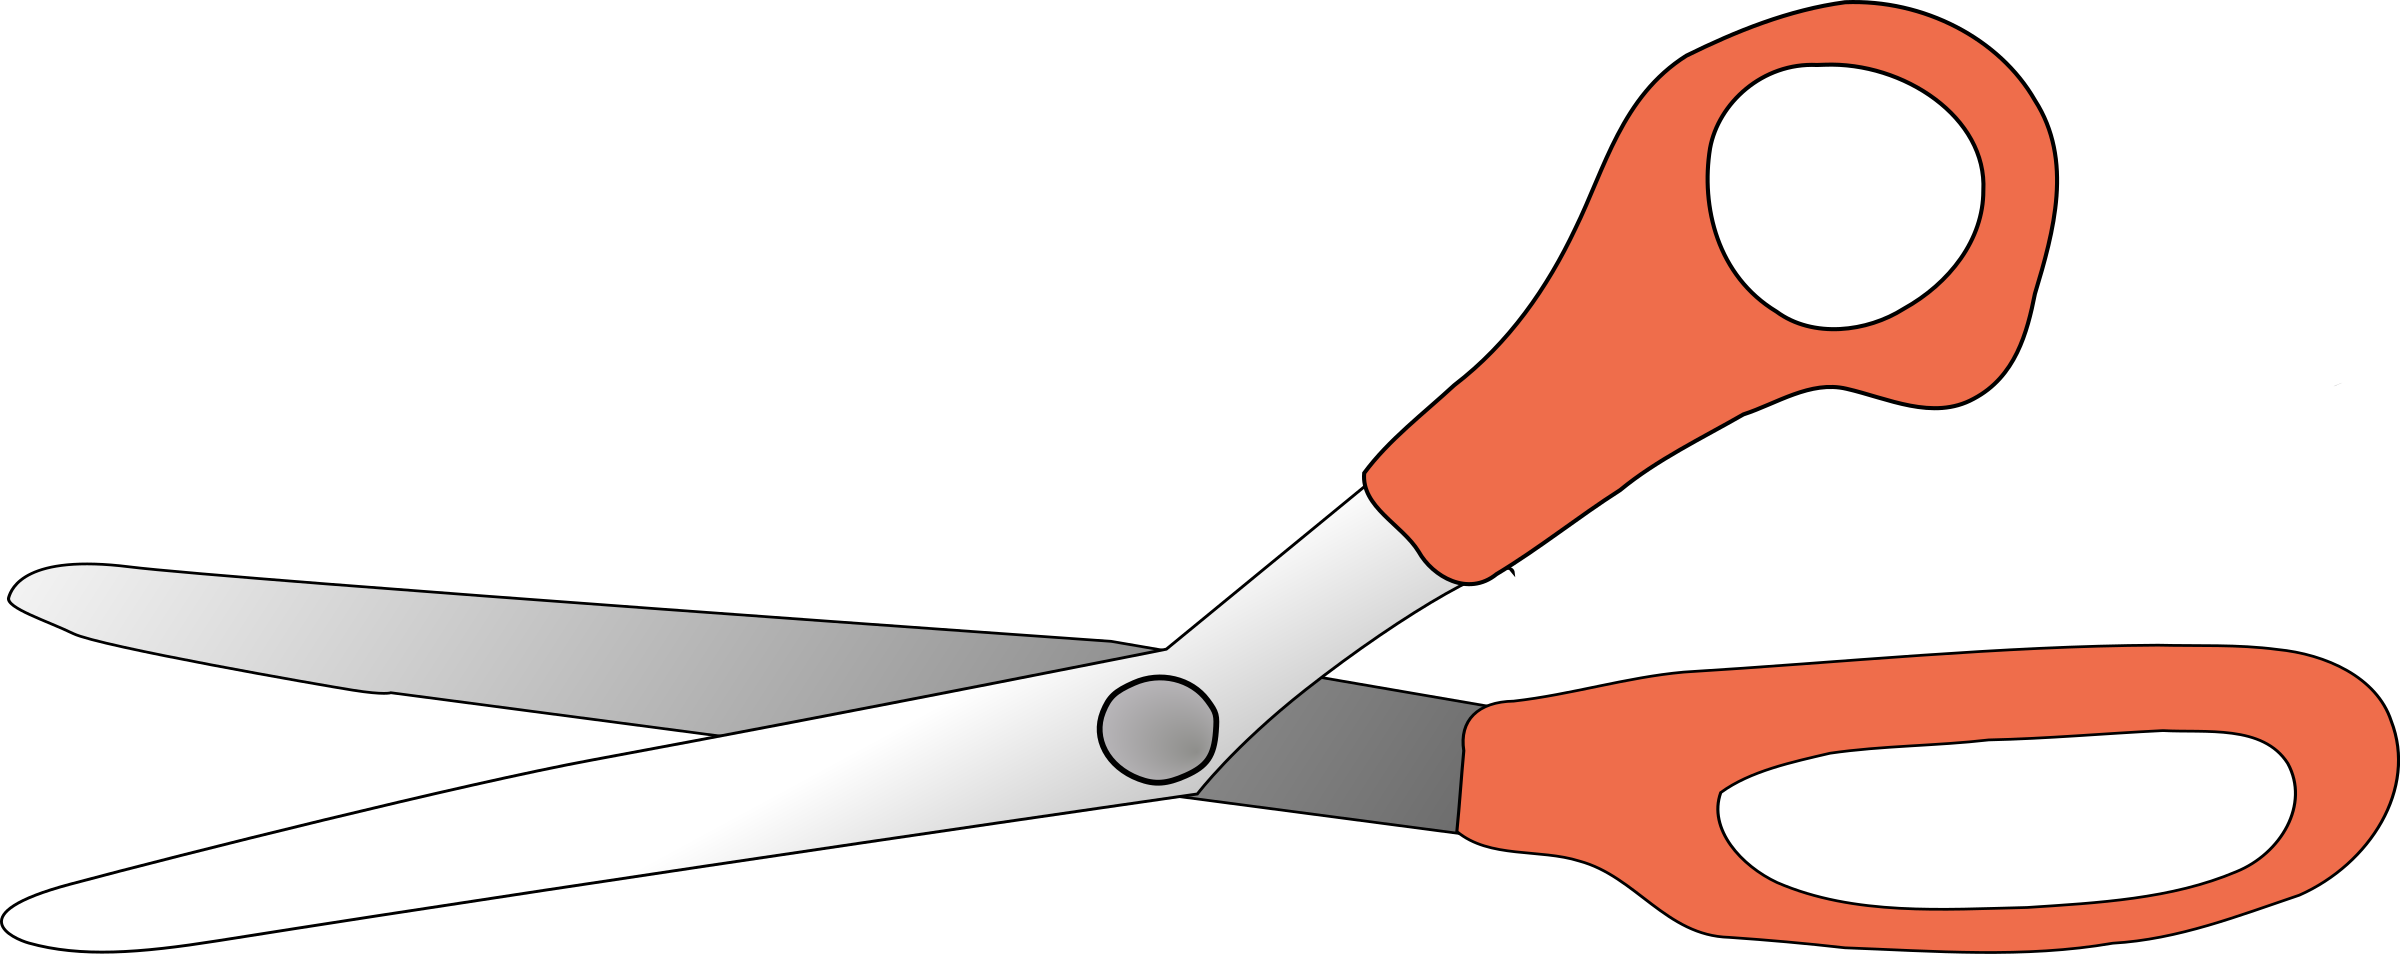 shears clipart fabric scissors